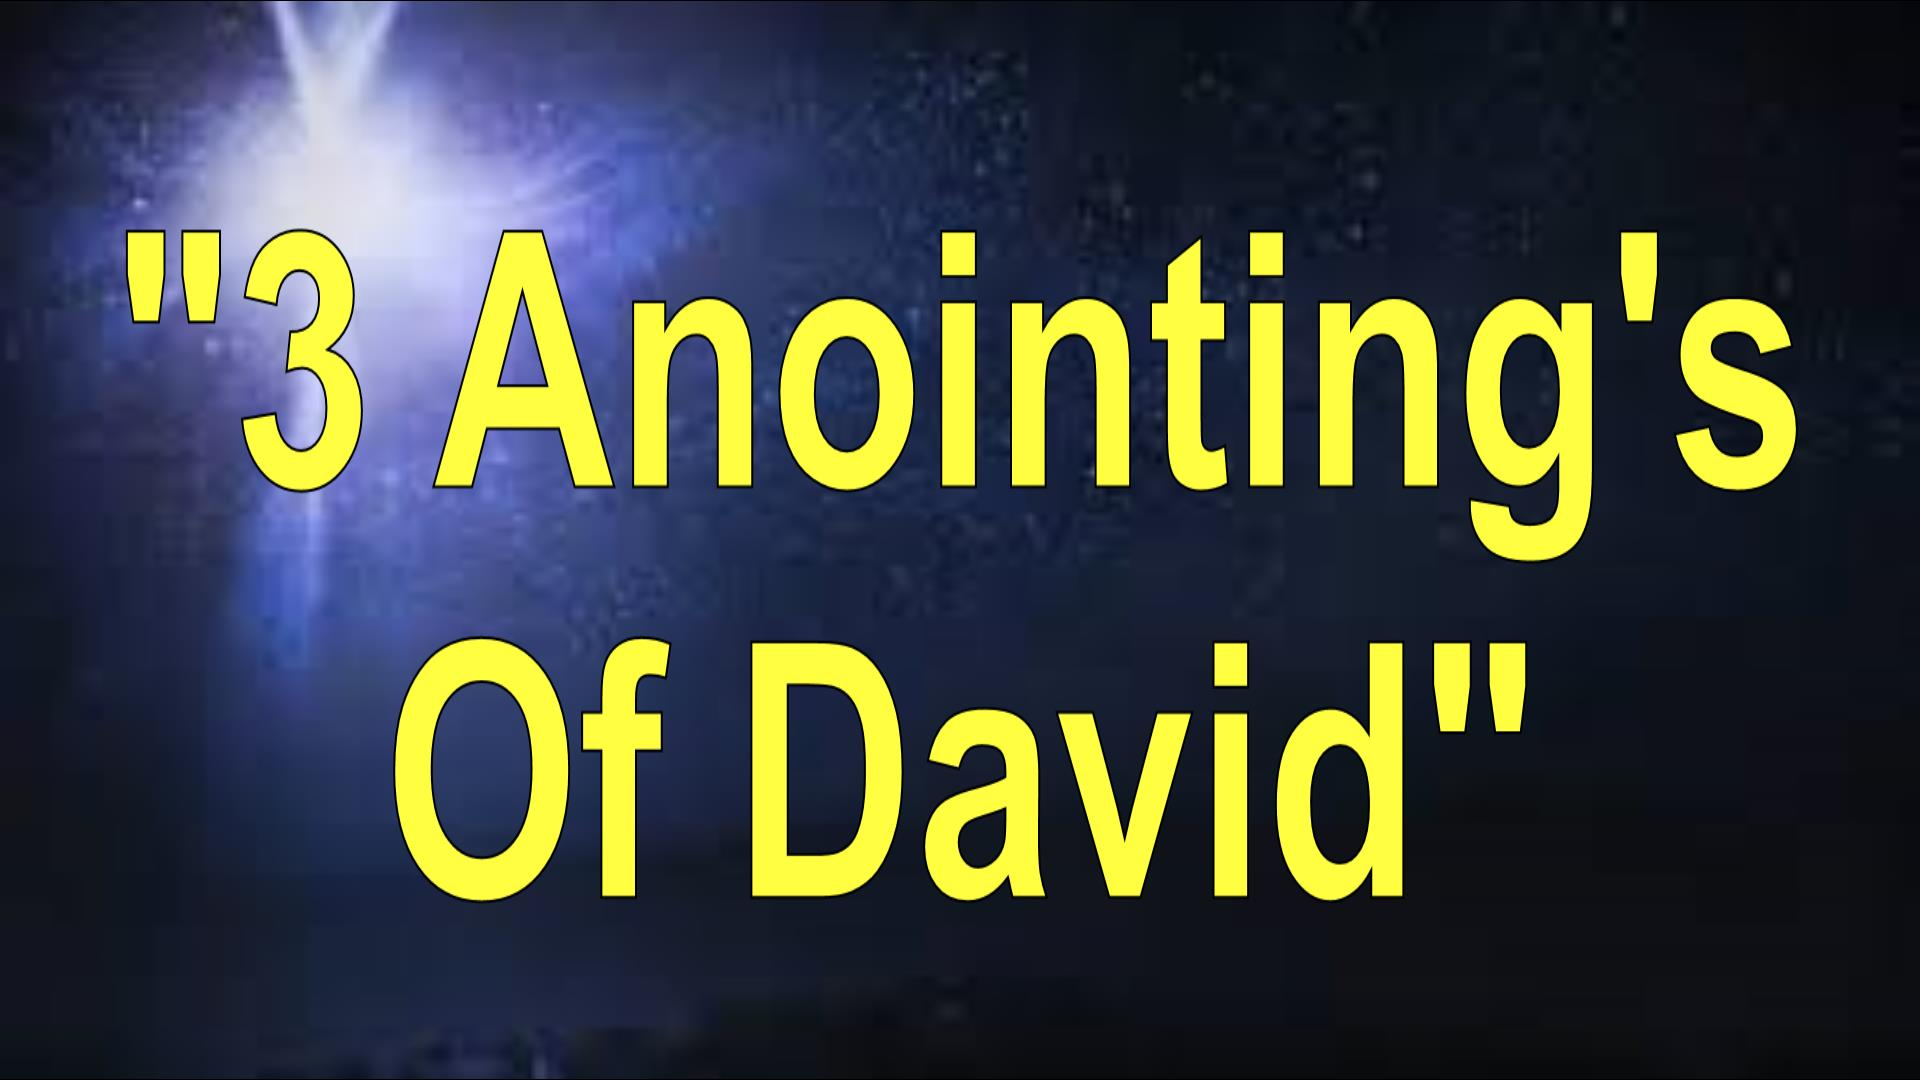 3 ANOINTINGS OF DAVID